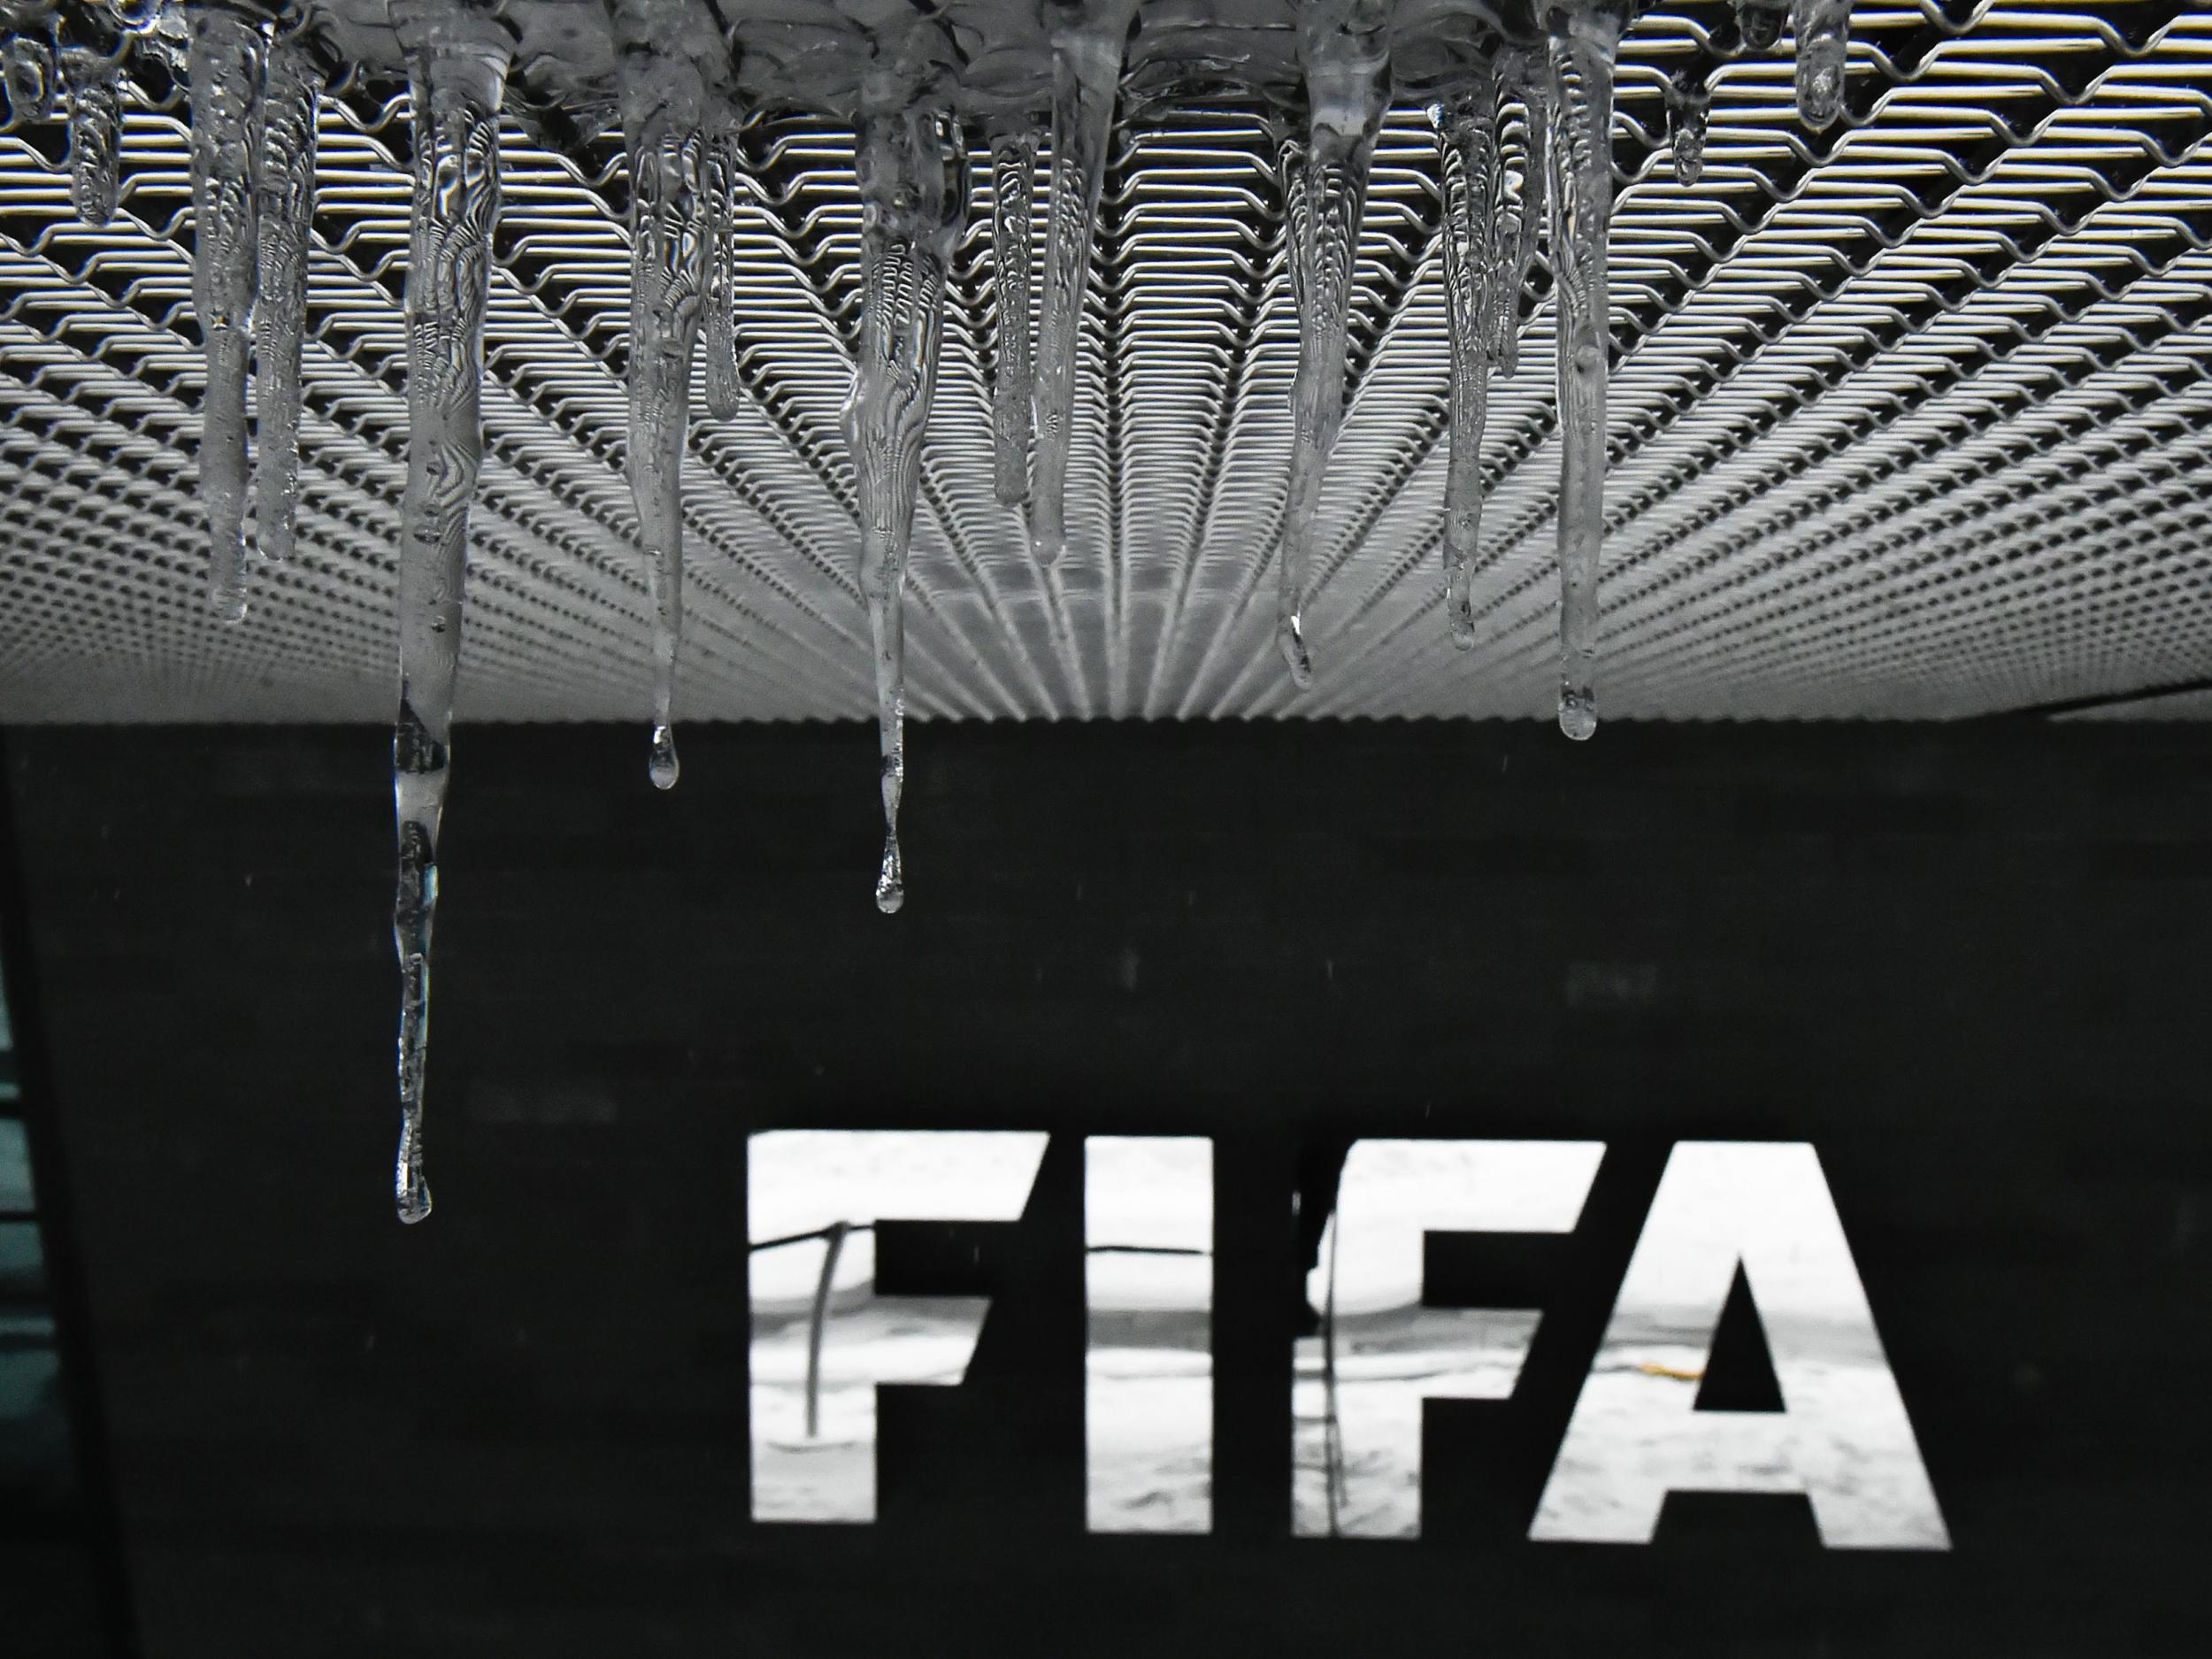 Fifa hand over 20,000 pages of evidence to authorities after two-year corruption investigation